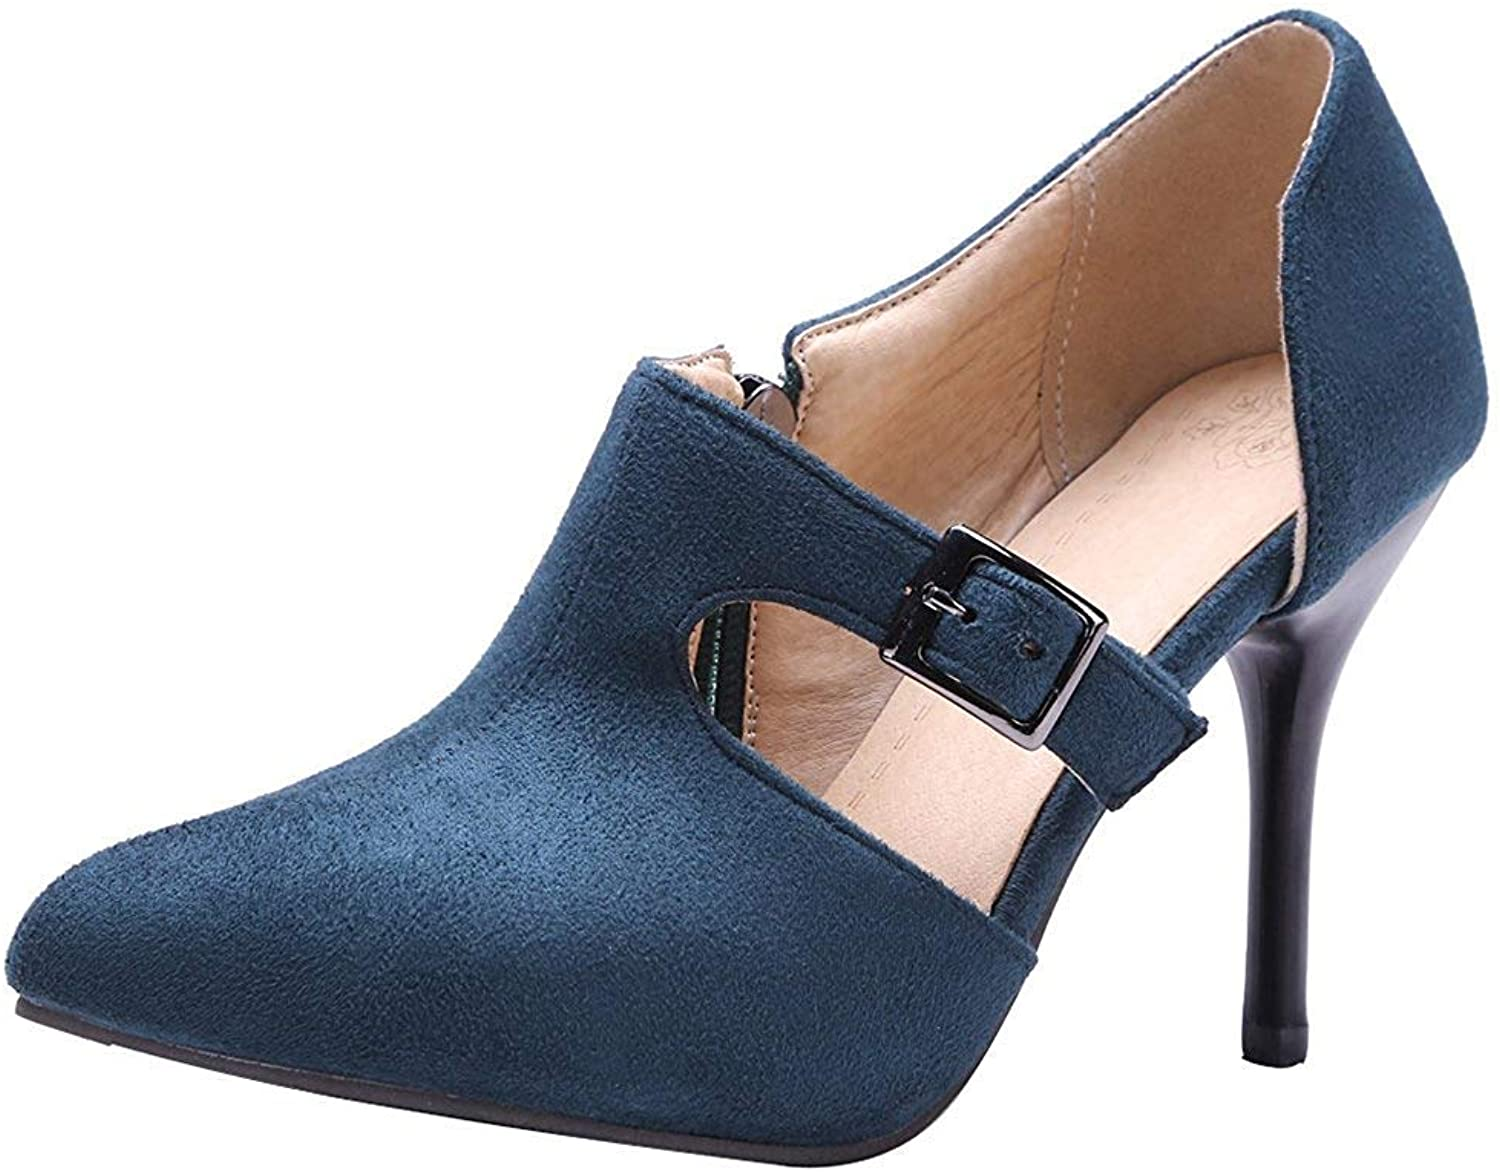 Ghapwe Women's Stylish Pointed Toe Pump - Faux Suede Cut Out Buckle Belt - Stiletto High Heels shoes with Zipper Black 4 M US